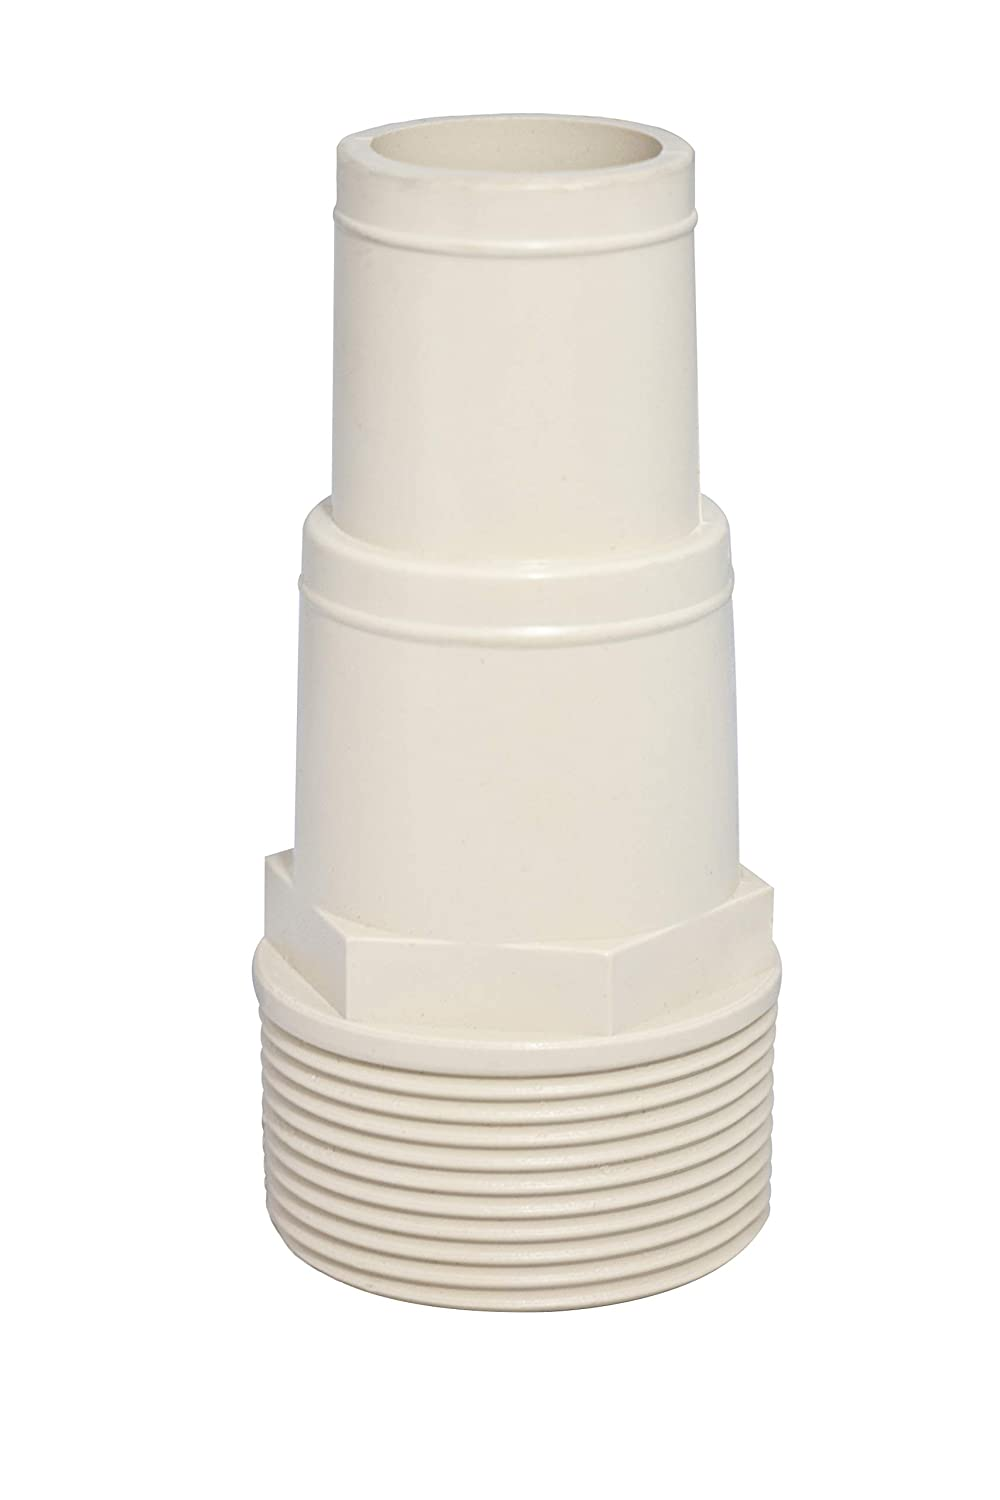 Swimline Hose 1 1 Adapter, White